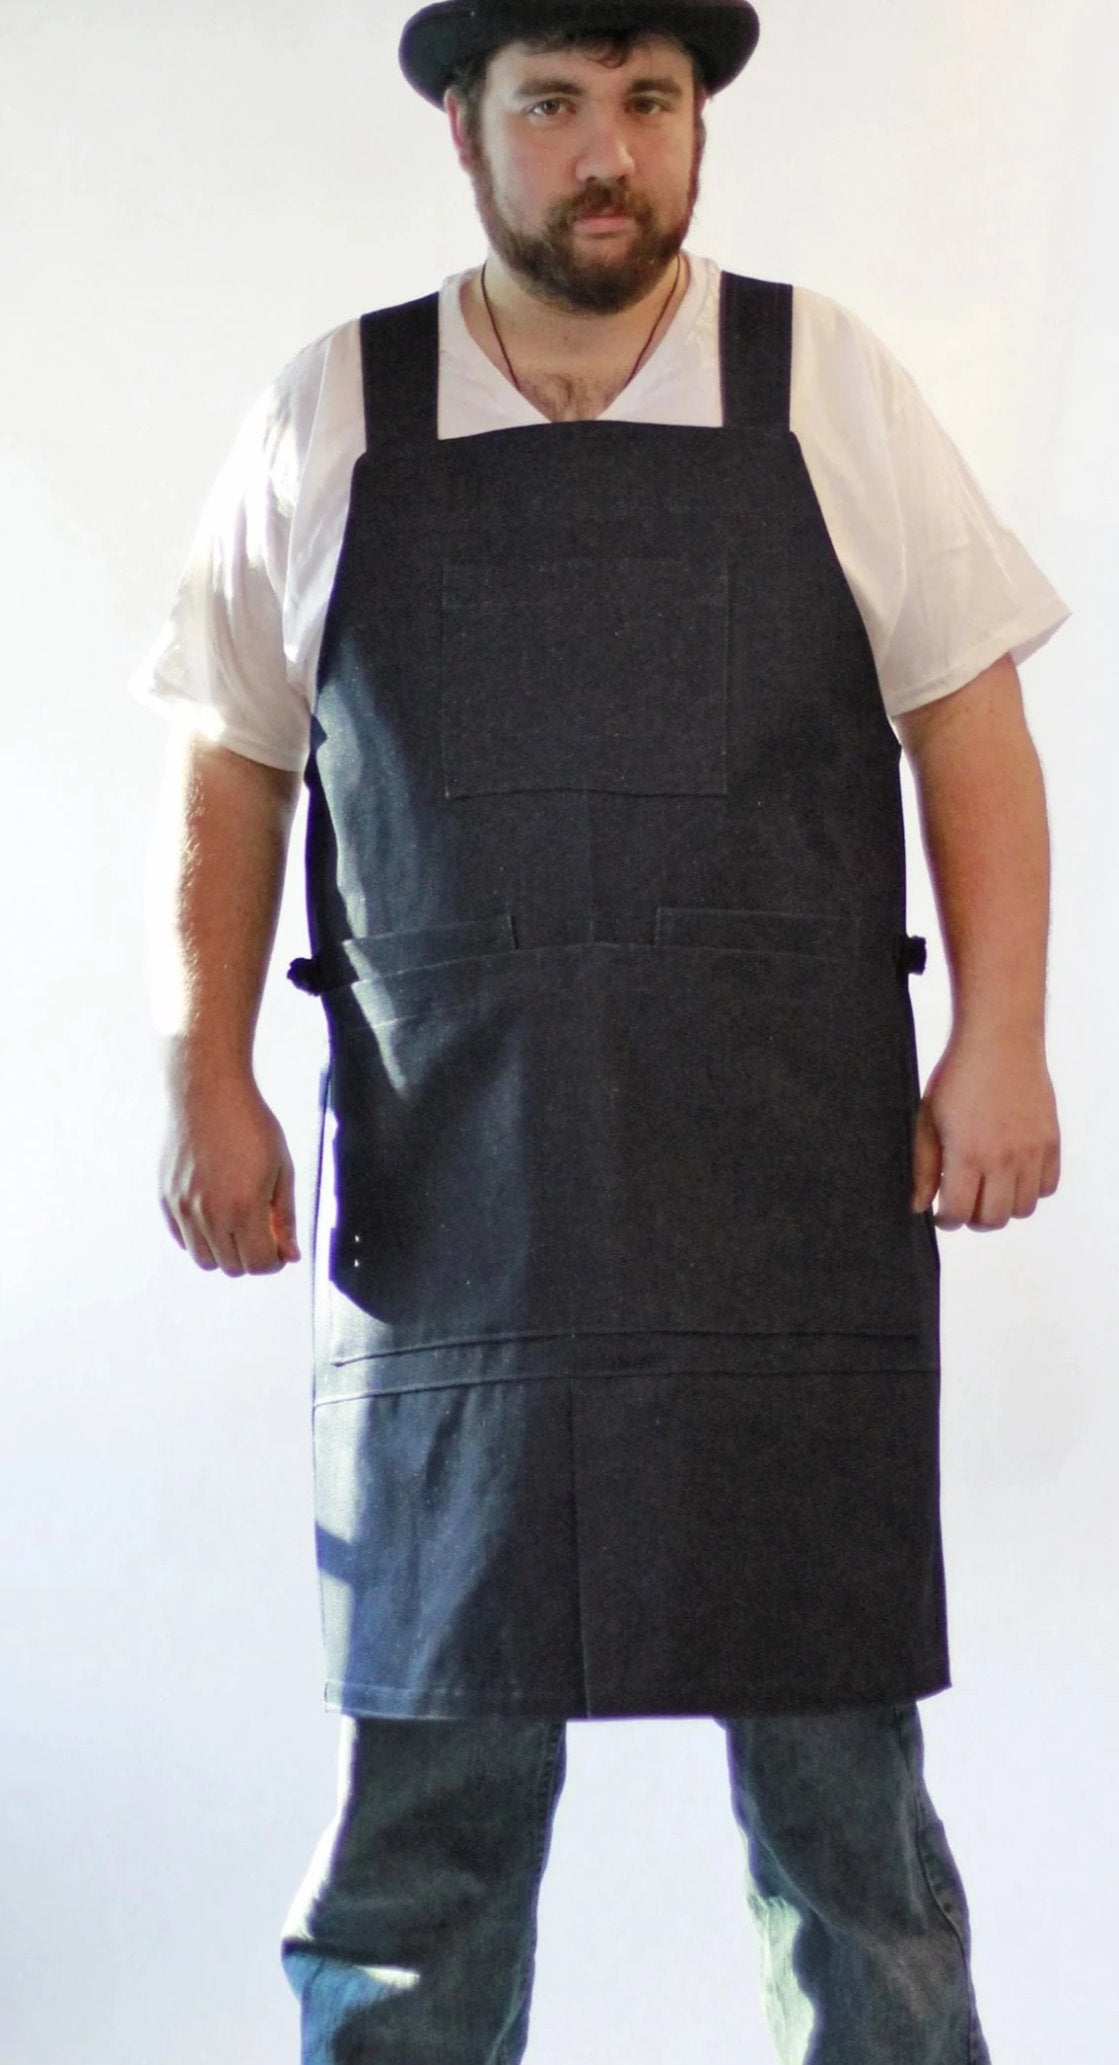 Walter's Apron ™ - Front View